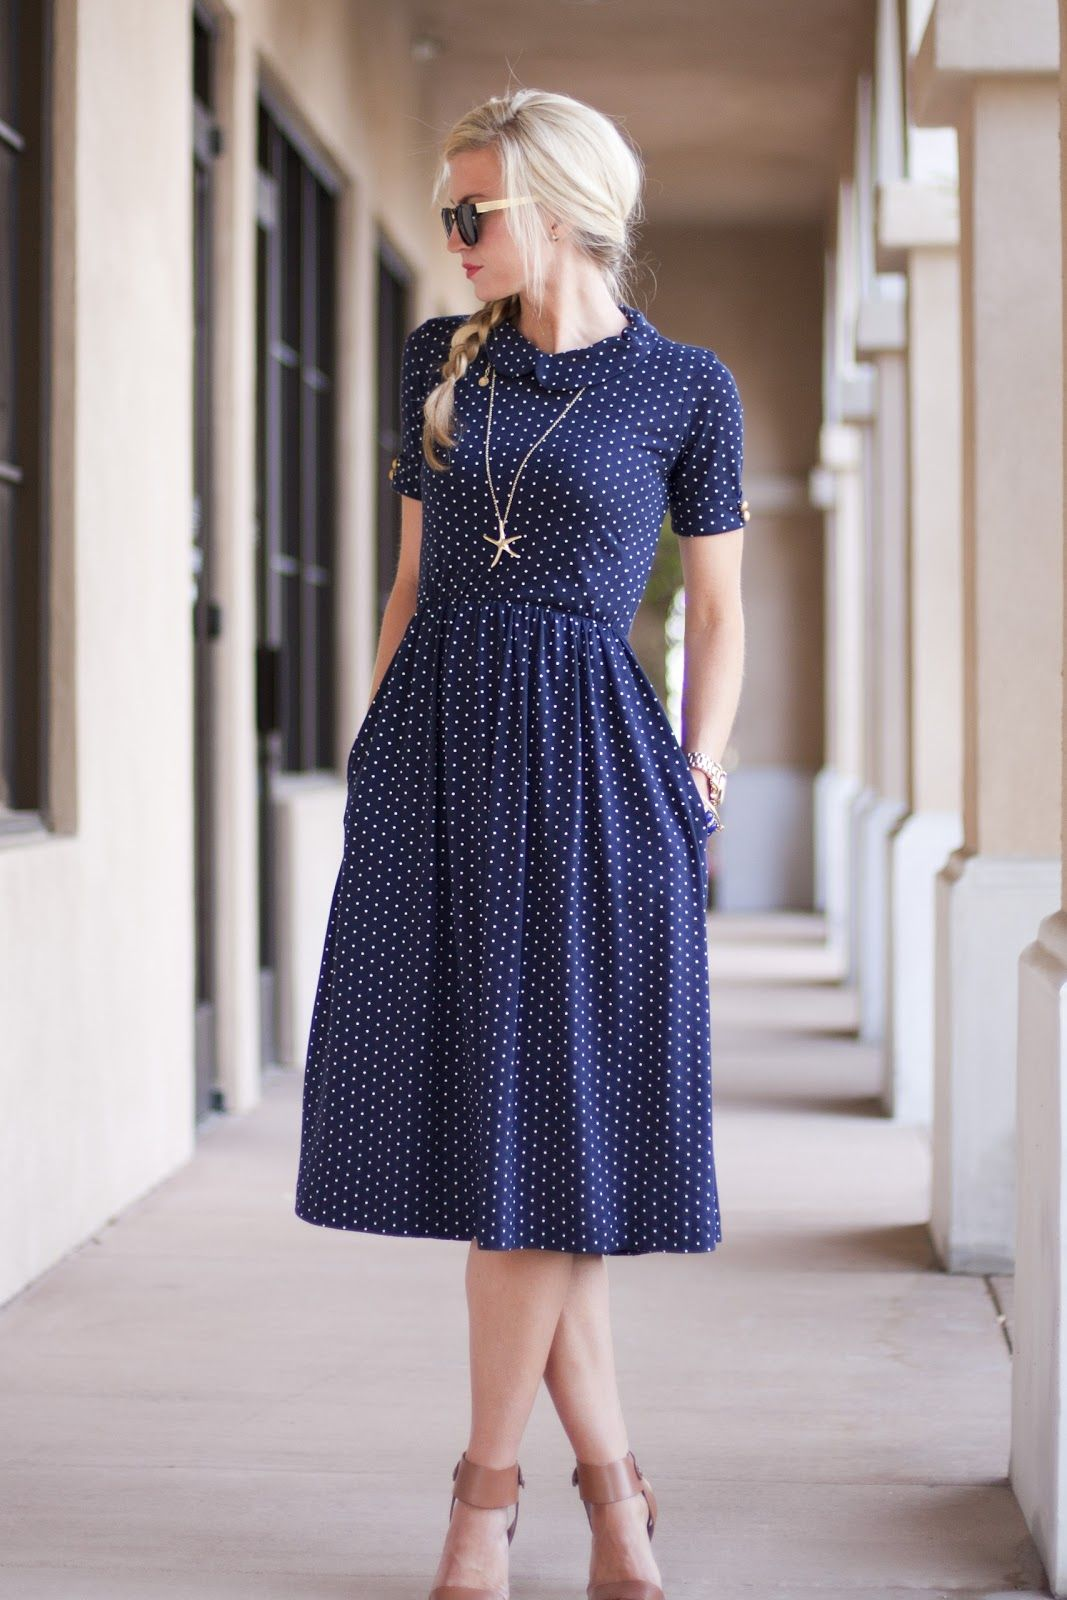 Spring sewing trends 8 ideas for sewing your own wardrobe dress dress in navy pin dot fabric i like the cute neck and sleeves on this ombrellifo Images